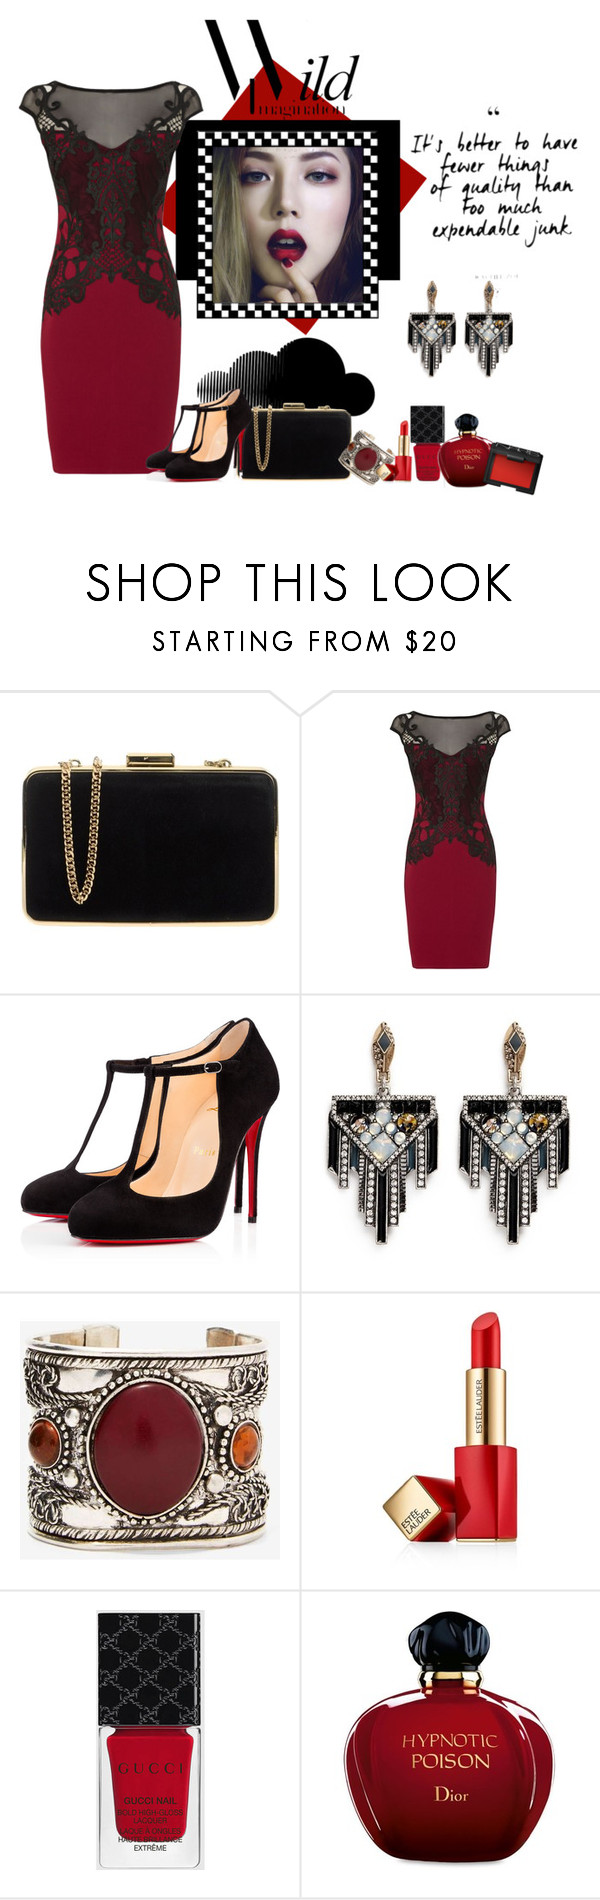 """""""Wild Imagination❤️"""" by glitterlady4 ❤ liked on Polyvore featuring MICHAEL Michael Kors, Lipsy, Christian Louboutin, Lulu Frost, Estée Lauder, Gucci, Christian Dior and NARS Cosmetics"""